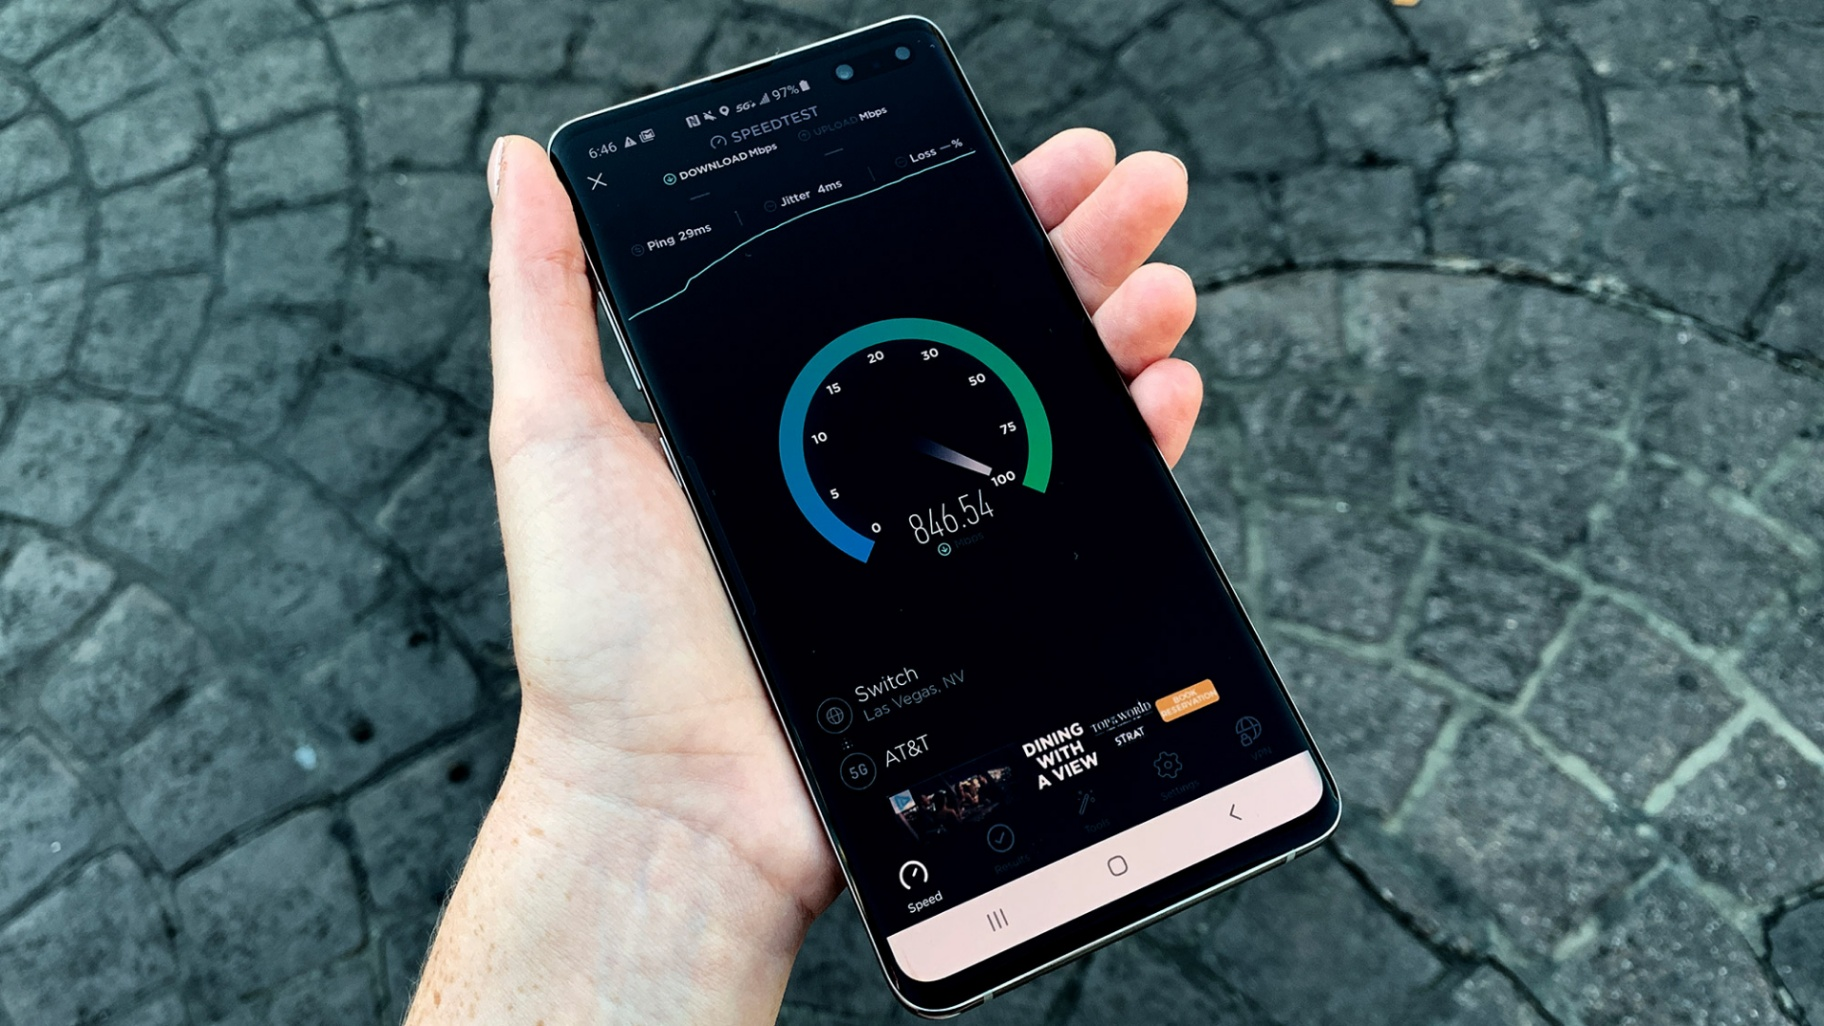 Discover How to Test Mobile Internet Speed with an App